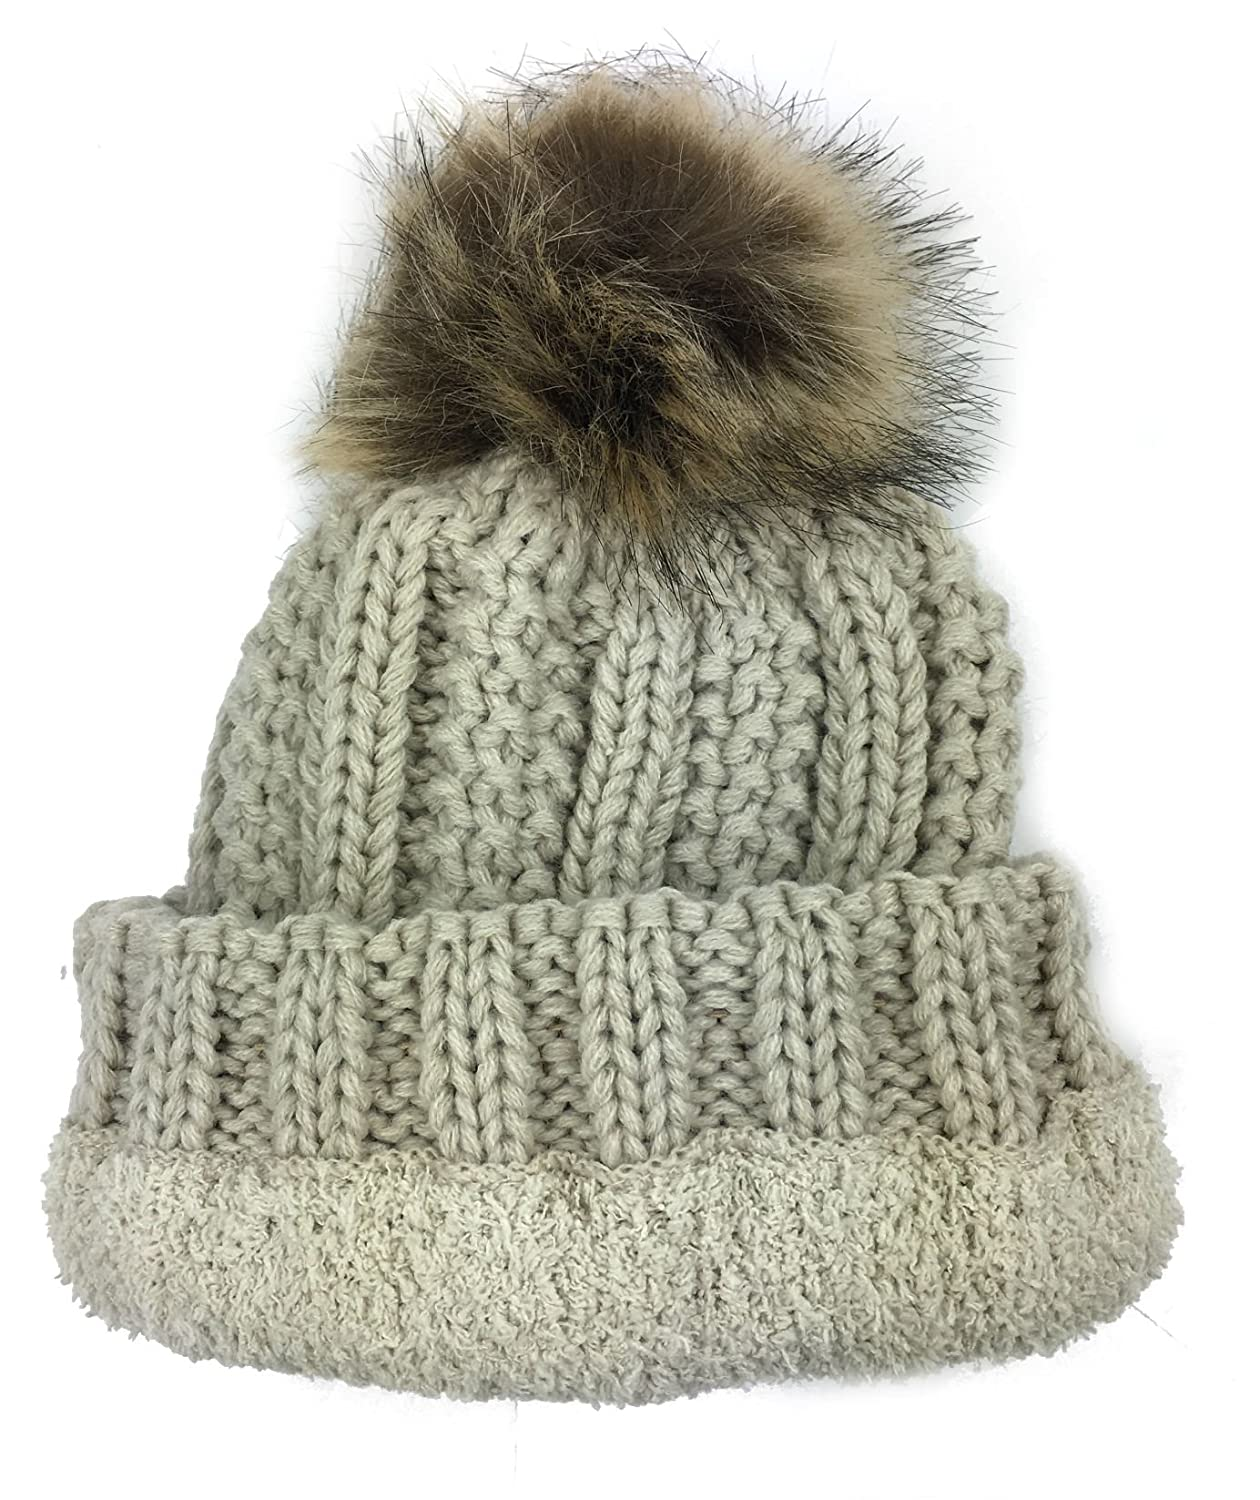 bb3f0c0ad01 Amazon.com  Plum Feathers Thick Faux Fur Pom Pom Fleece Lined Skull Cap Cuff  Beanie for Kids Ages 2-7 (Beige)  Clothing